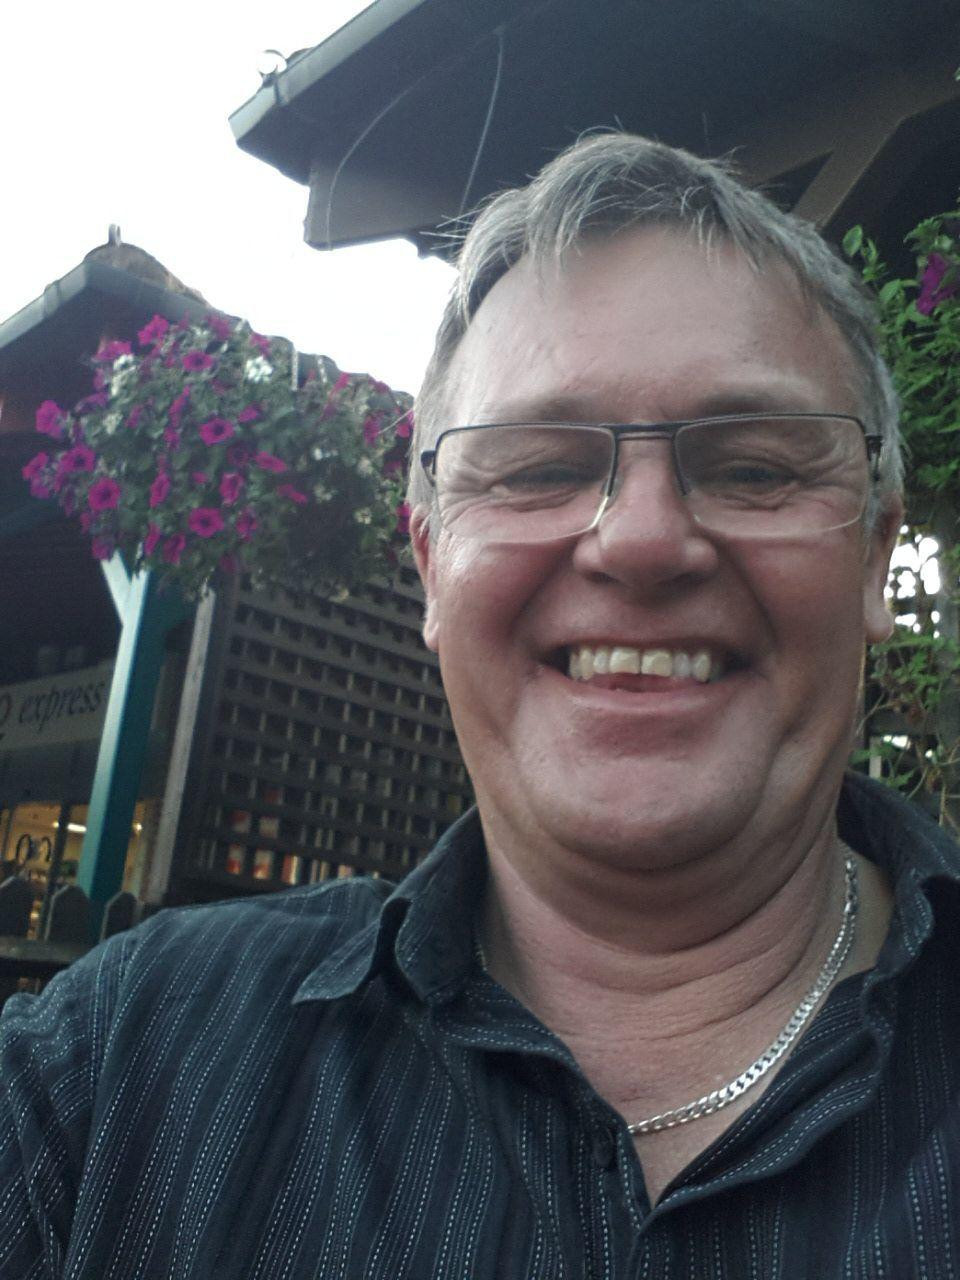 meet dunstable singles Mature dating in luton, bedfordshire looking for young-at-heart 40 plus singles in luton luton and its near neighbours, dunstable and houghton regis.